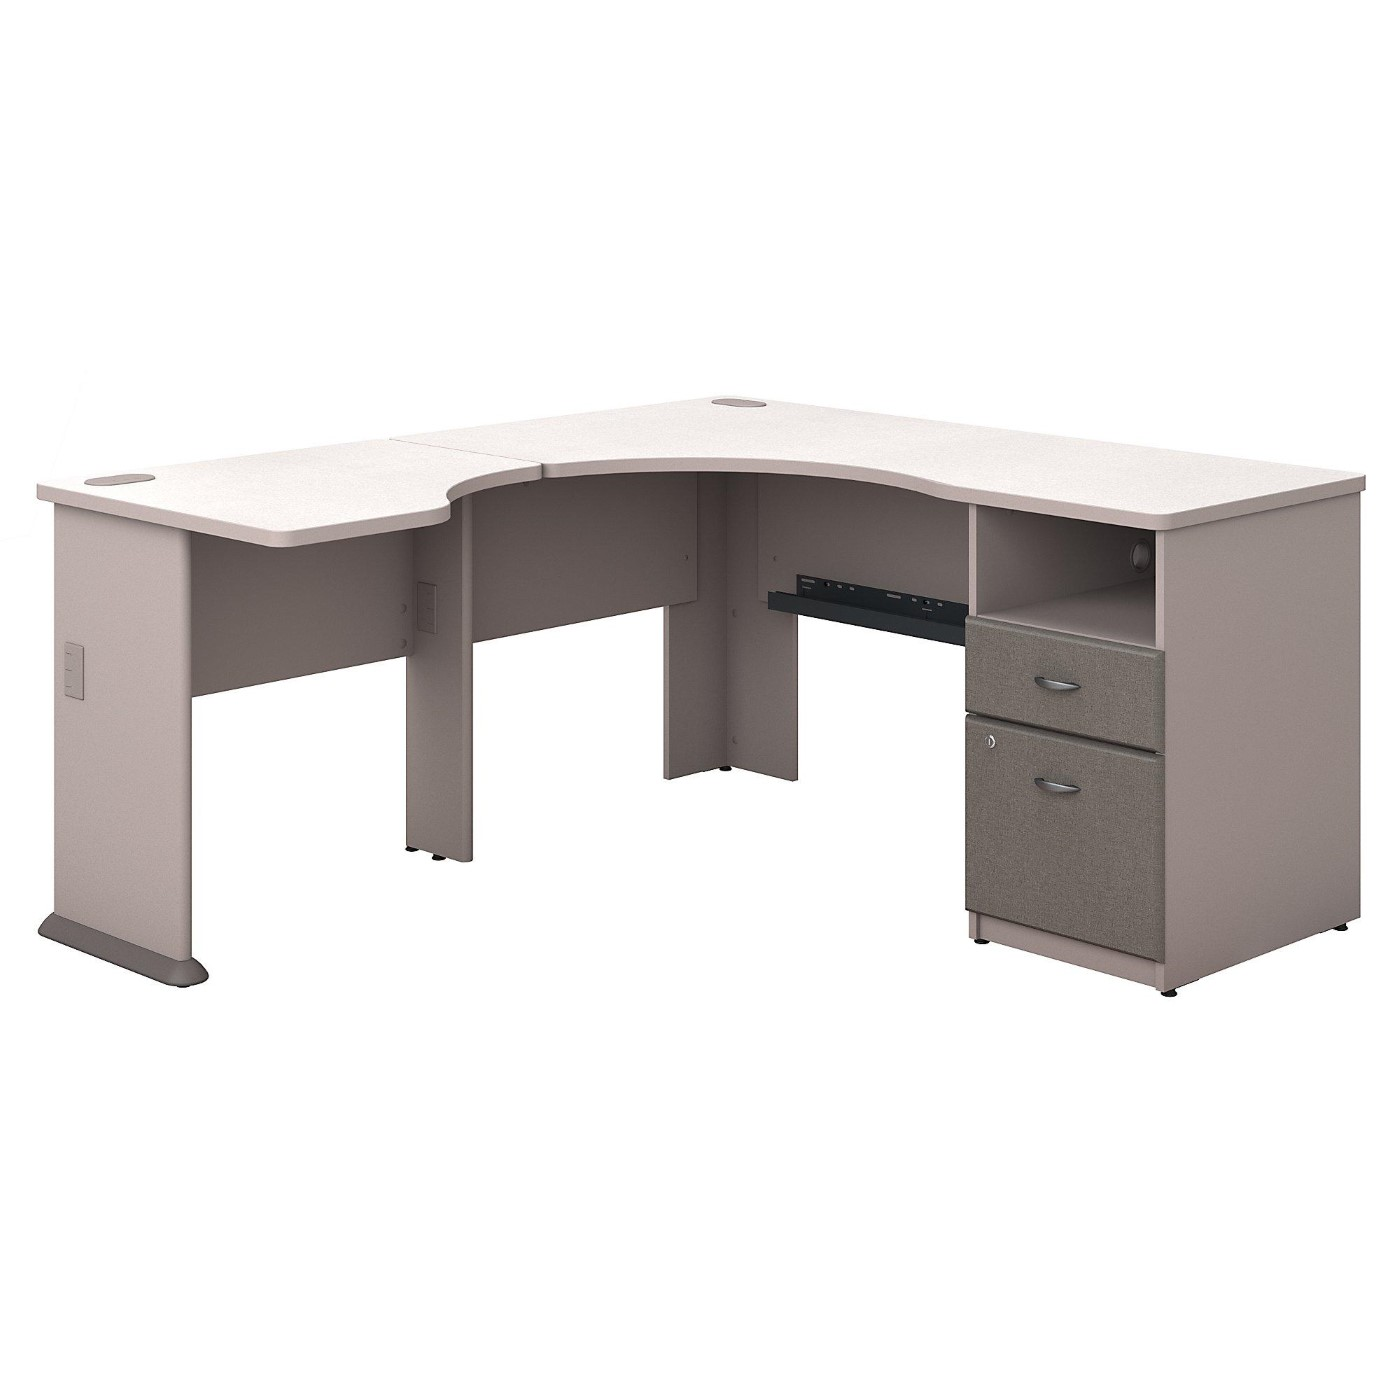 <font color=#c60><b>BUSH BUSINESS FURNITURE SERIES A 60W L SHAPED CORNER DESK WITH 2 DRAWER PEDESTAL AND 30W BRIDGE. FREE SHIPPING</font></b>